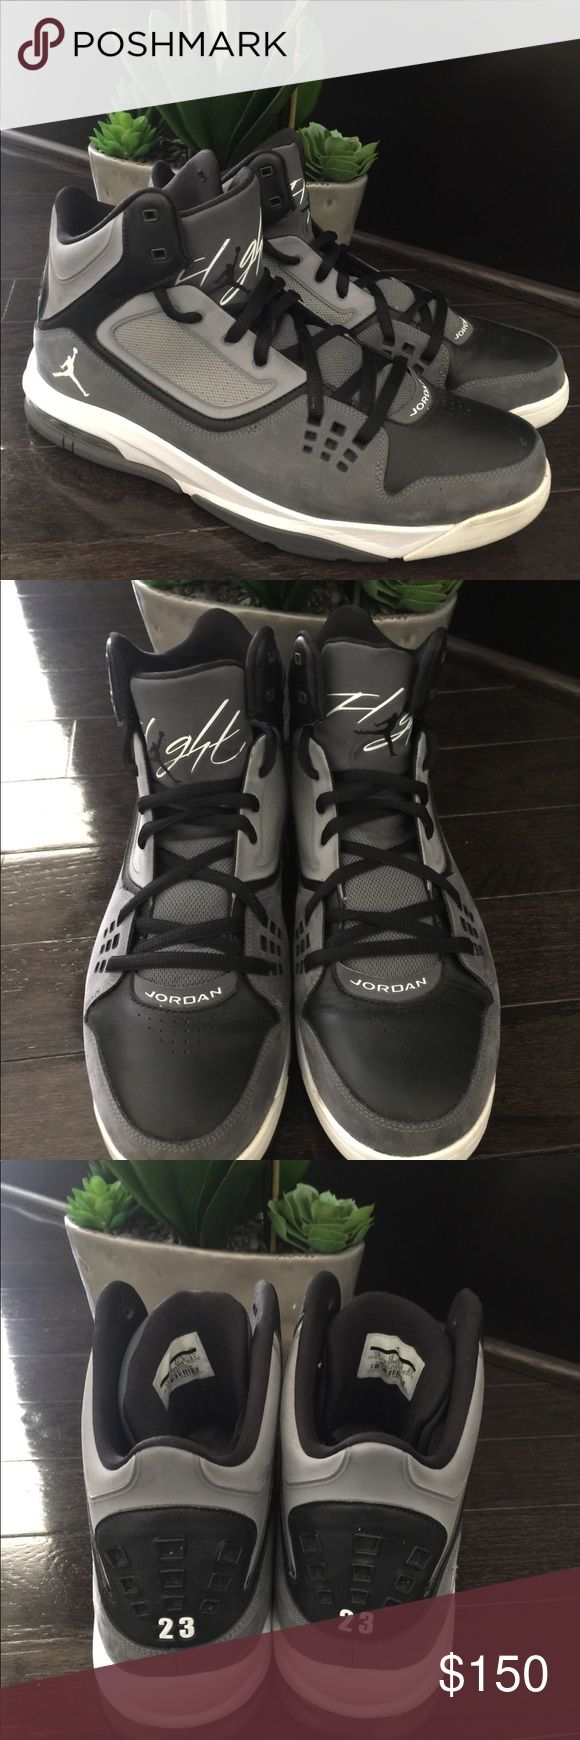 Nike Air Jordan Flight 23 Style 512234-005 (2012) Used, great condition. Black, gray and white. US 13 UK 12.5 EUR 47.5 Nike Shoes Athletic Shoes